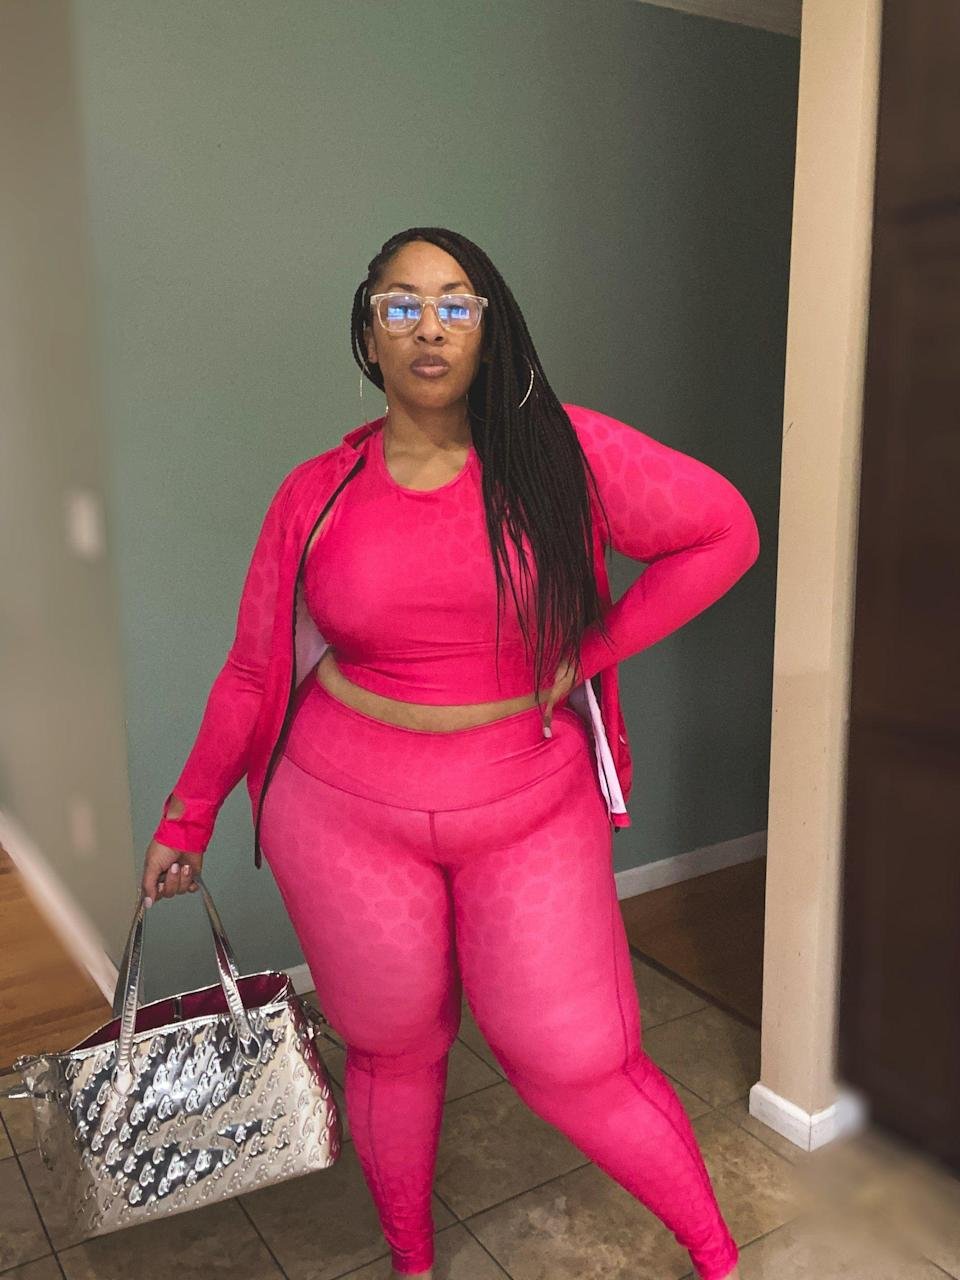 "<p>meltfitactive.com</p><p><strong>$50.00</strong></p><p><a href=""https://meltfitactive.com/products/pink-out-jacket-leggings"" rel=""nofollow noopener"" target=""_blank"" data-ylk=""slk:Shop Now"" class=""link rapid-noclick-resp"">Shop Now</a></p>"